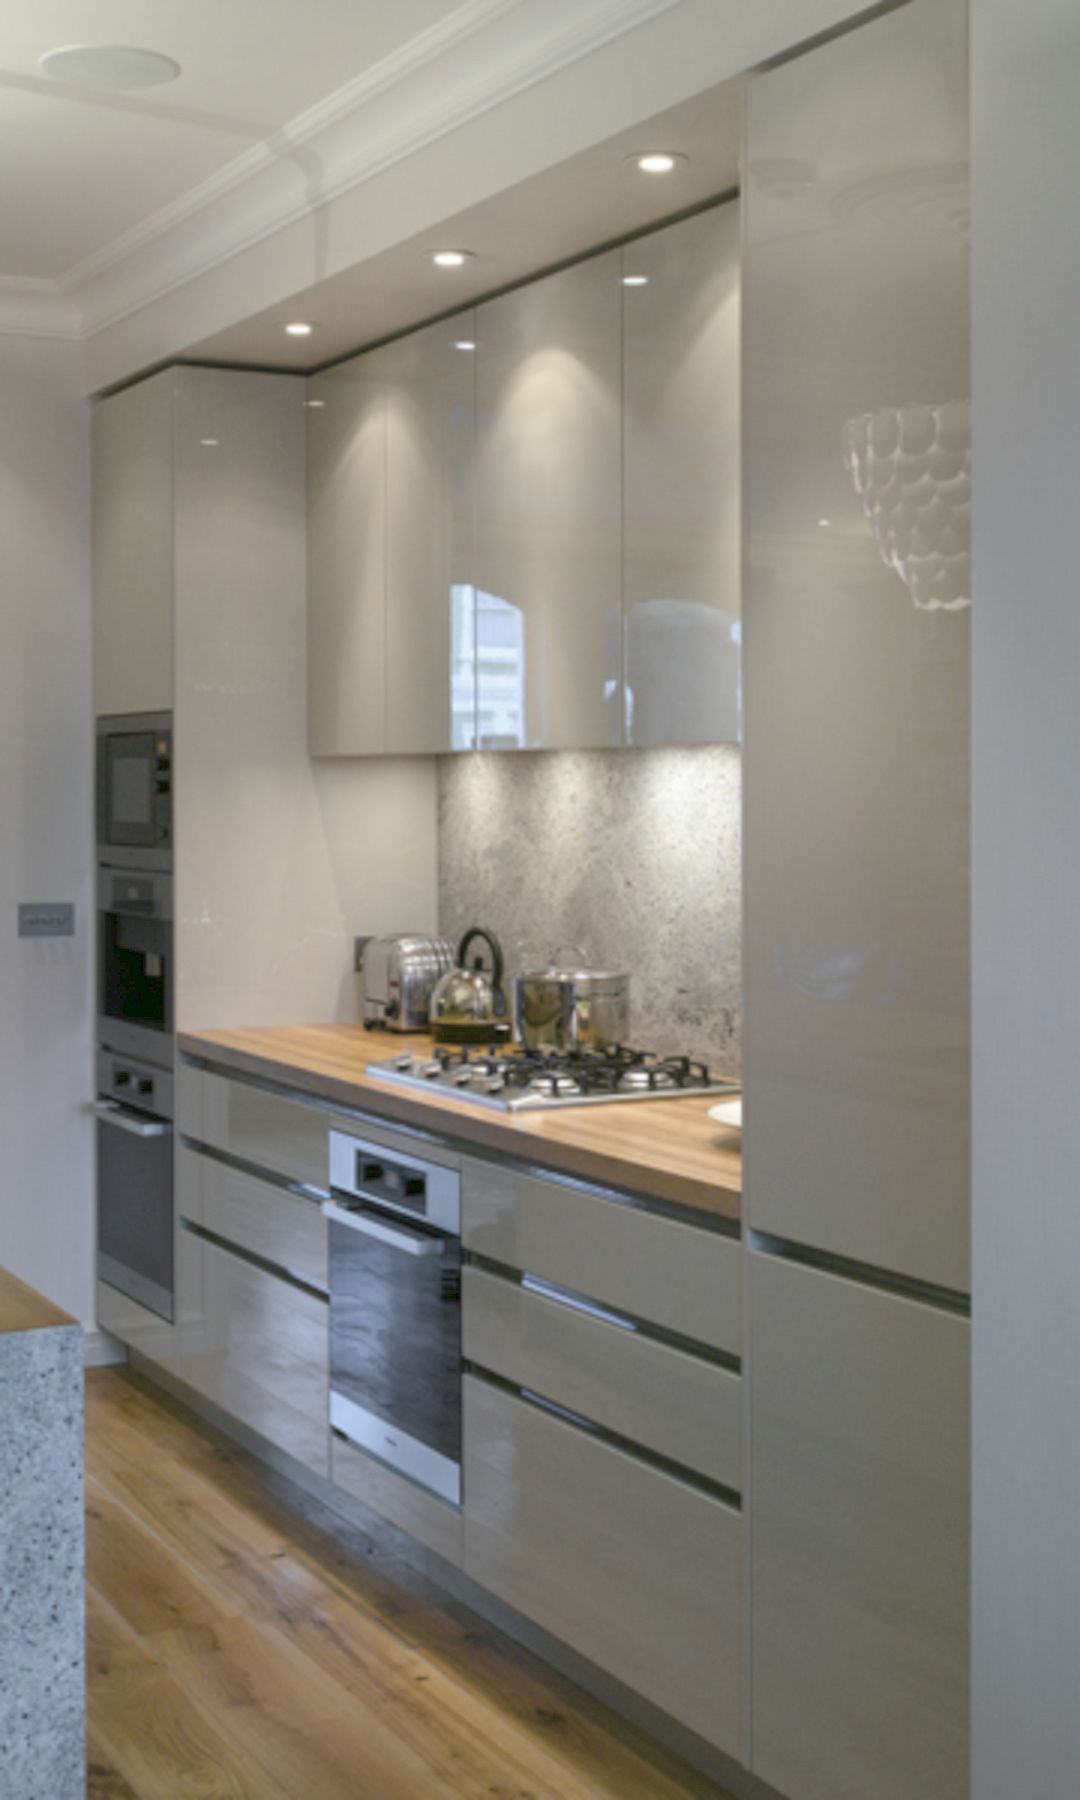 Inspiring Decor Ideas For Small Apartments Creating An Illusion Of Space Kitchen Design Small Modern Kitchen Design Kitchen Interior